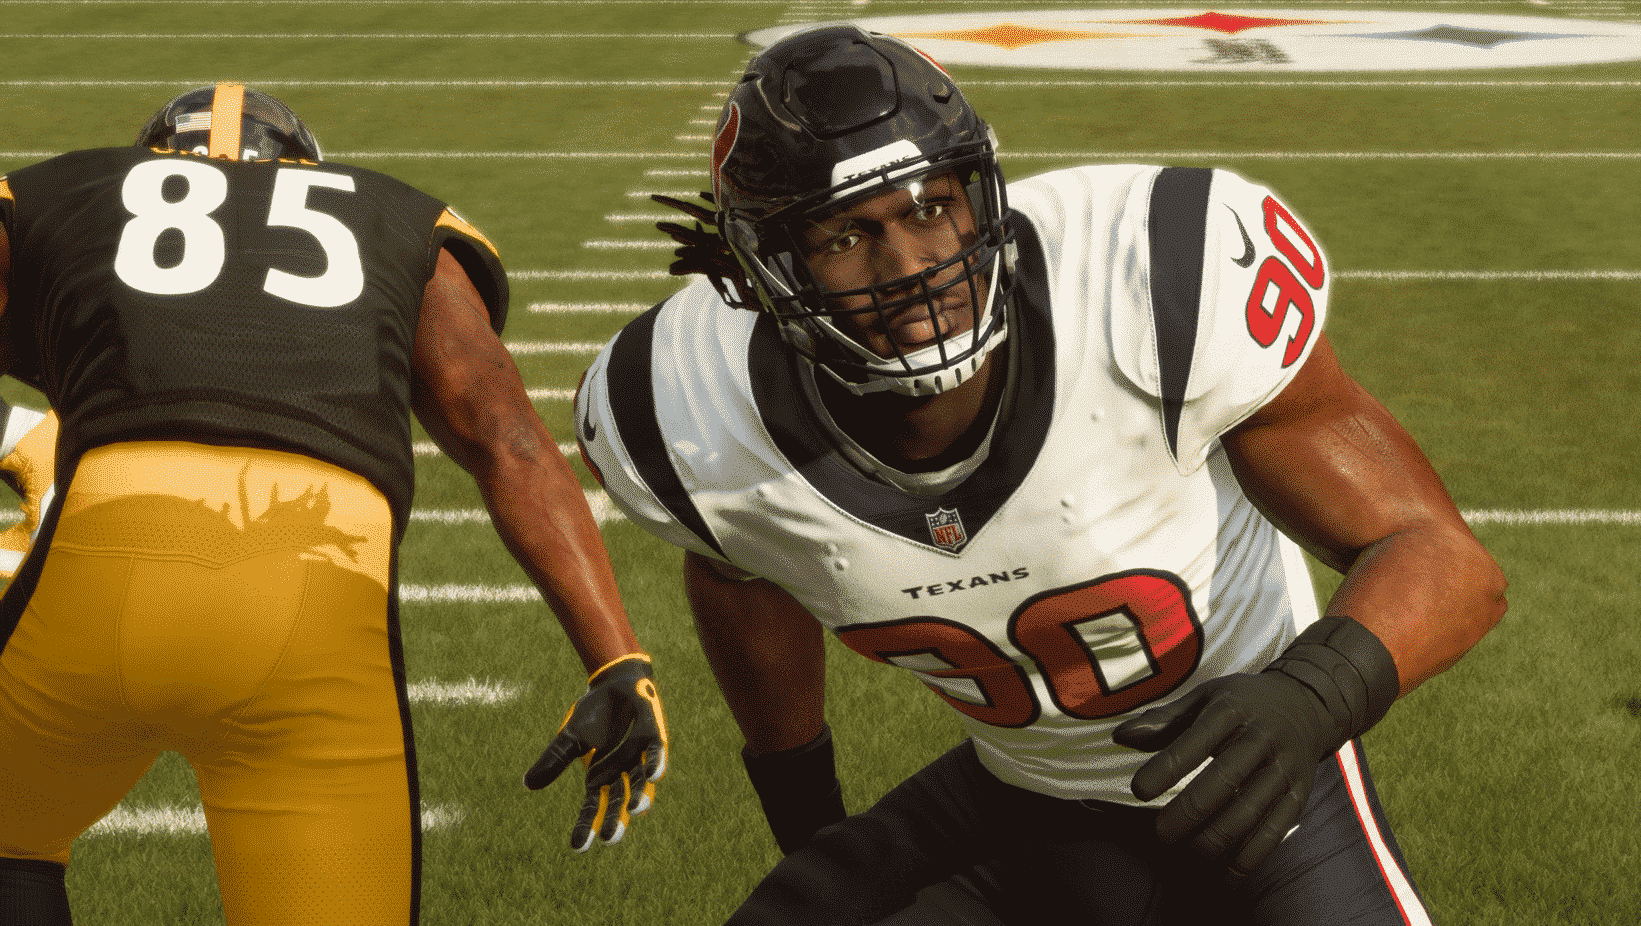 """New features for the upcoming """"Madden NFL 18"""" include Target Passing, three different Play Styles, additional coaching adjustments, new mechanics for wide receivers/defensive backs and the Frostbite Engine, which enhances visual capabilities. Those additions have been put on brief display in the first gameplay trailer released by EA Sports."""